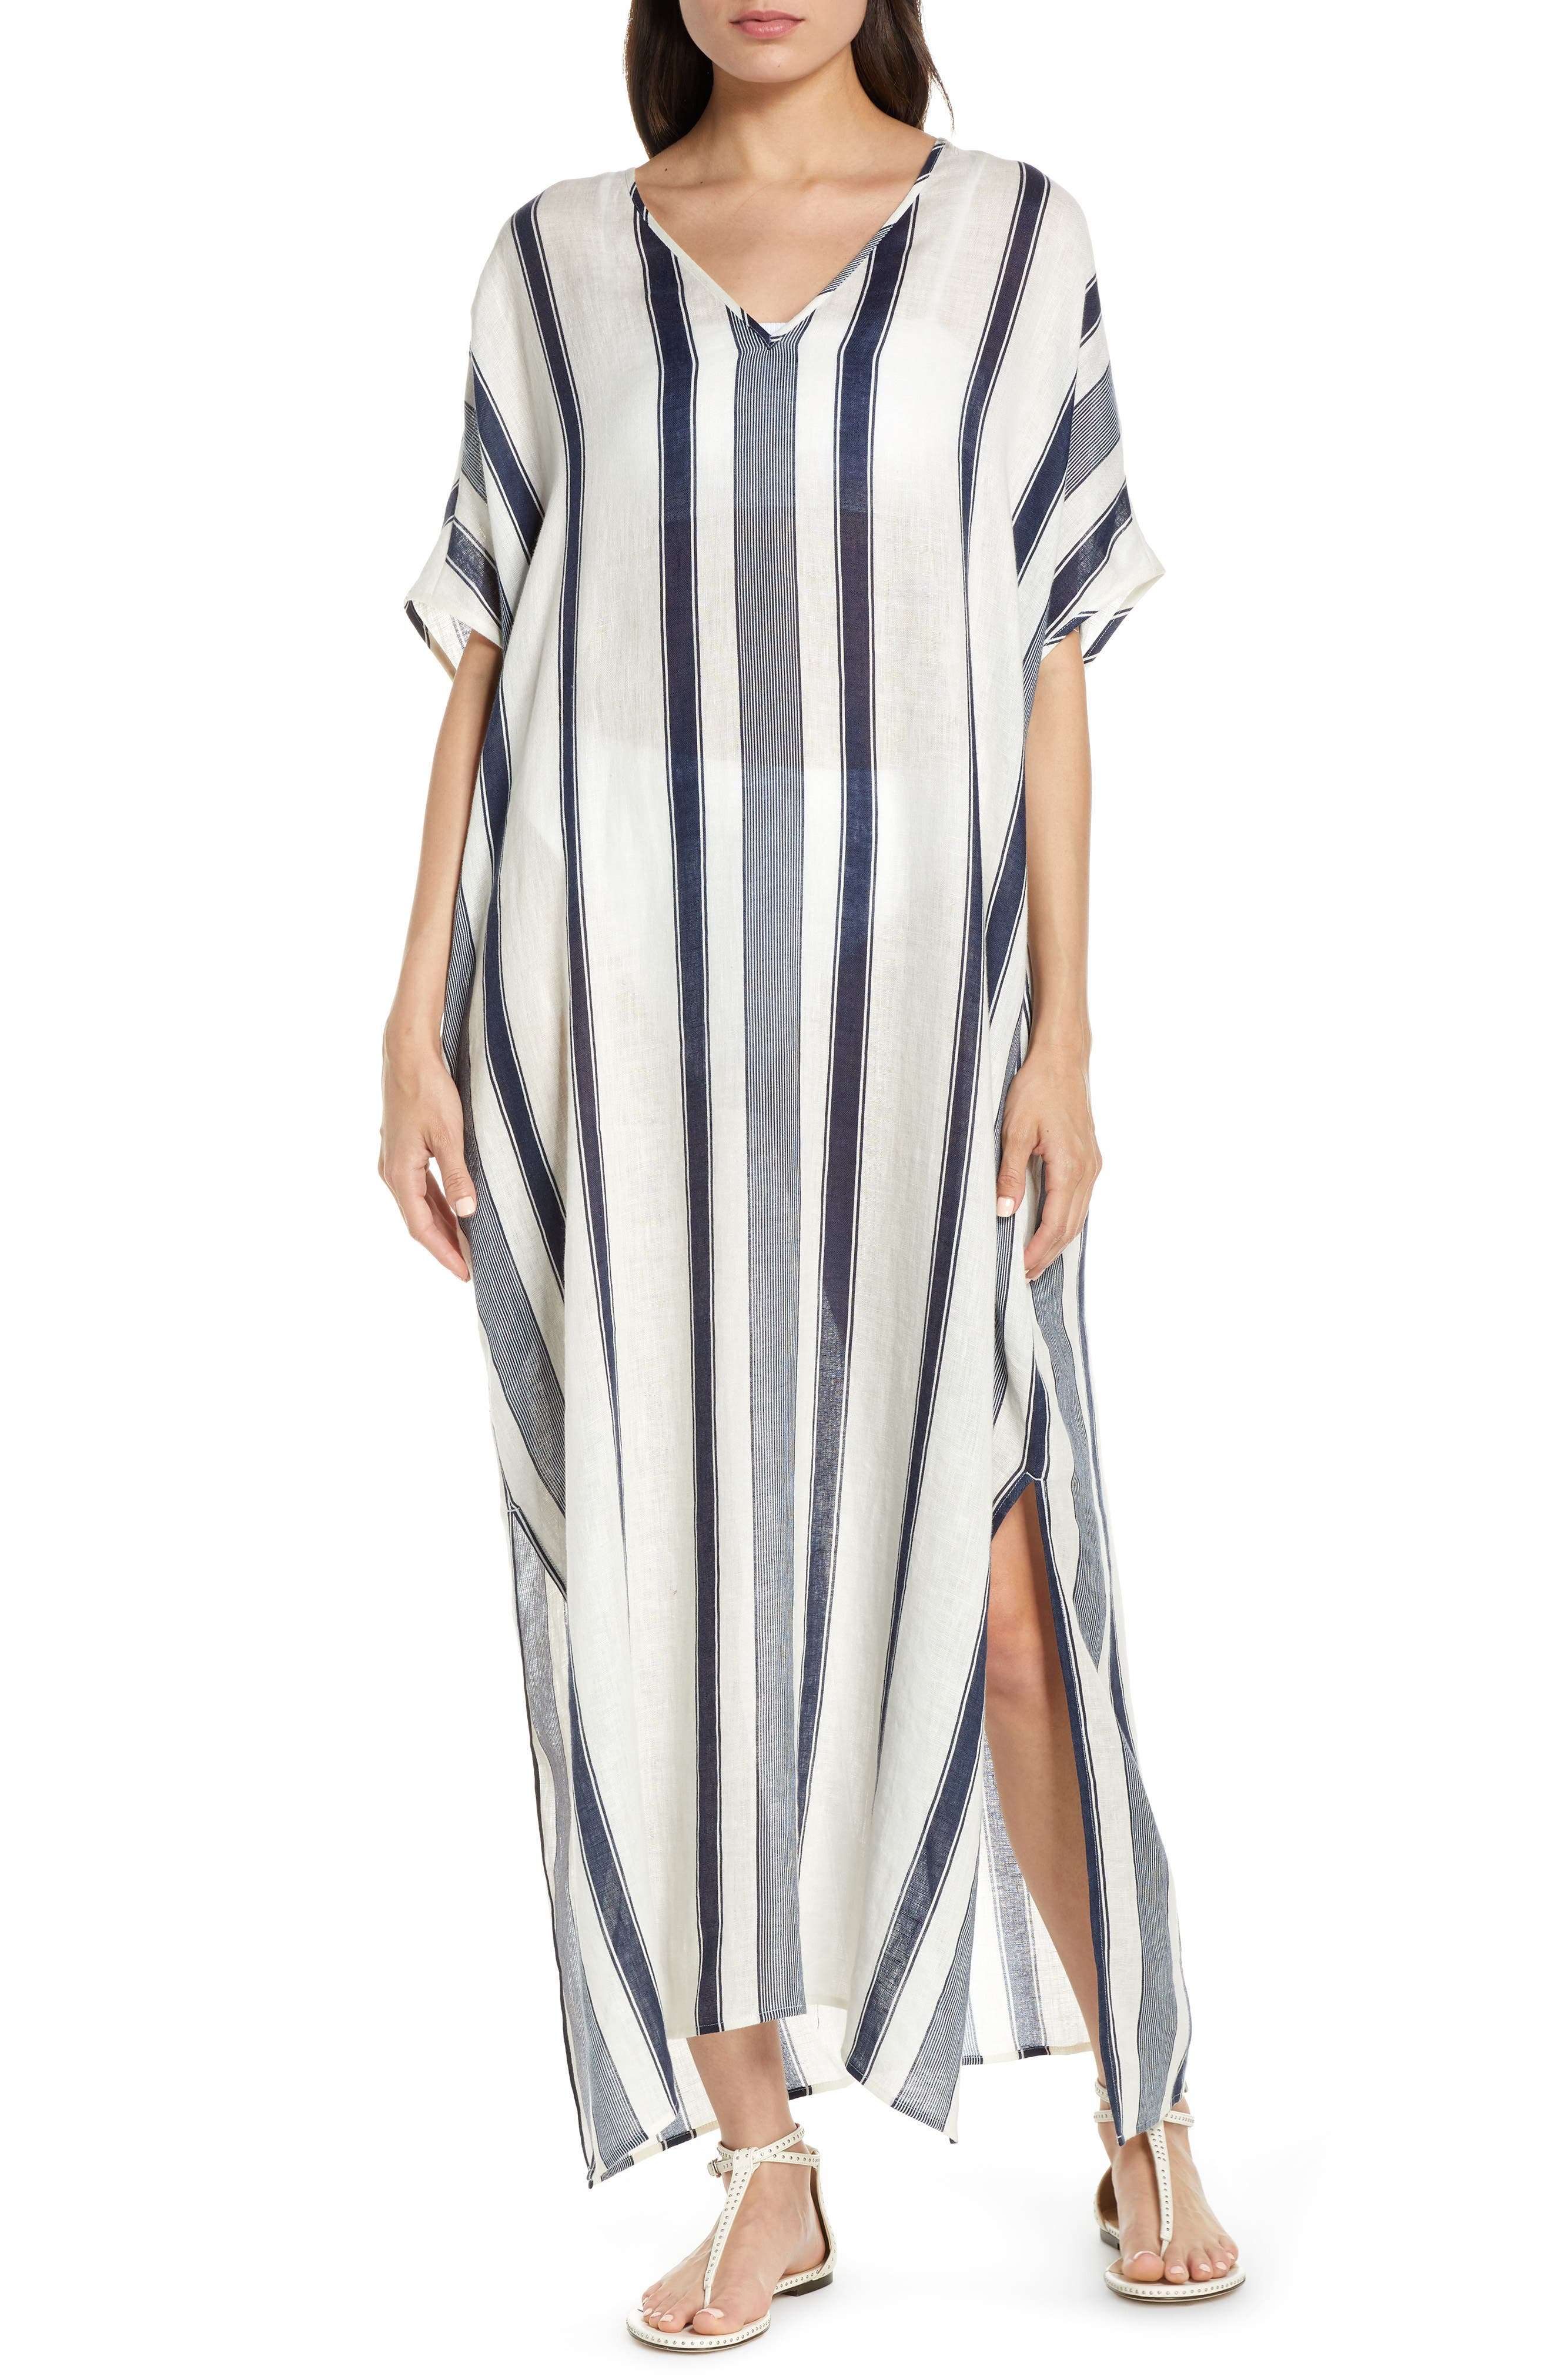 Tory Burch Awning Stripe Cover-Up Caftan Maxi Dress, Ivory